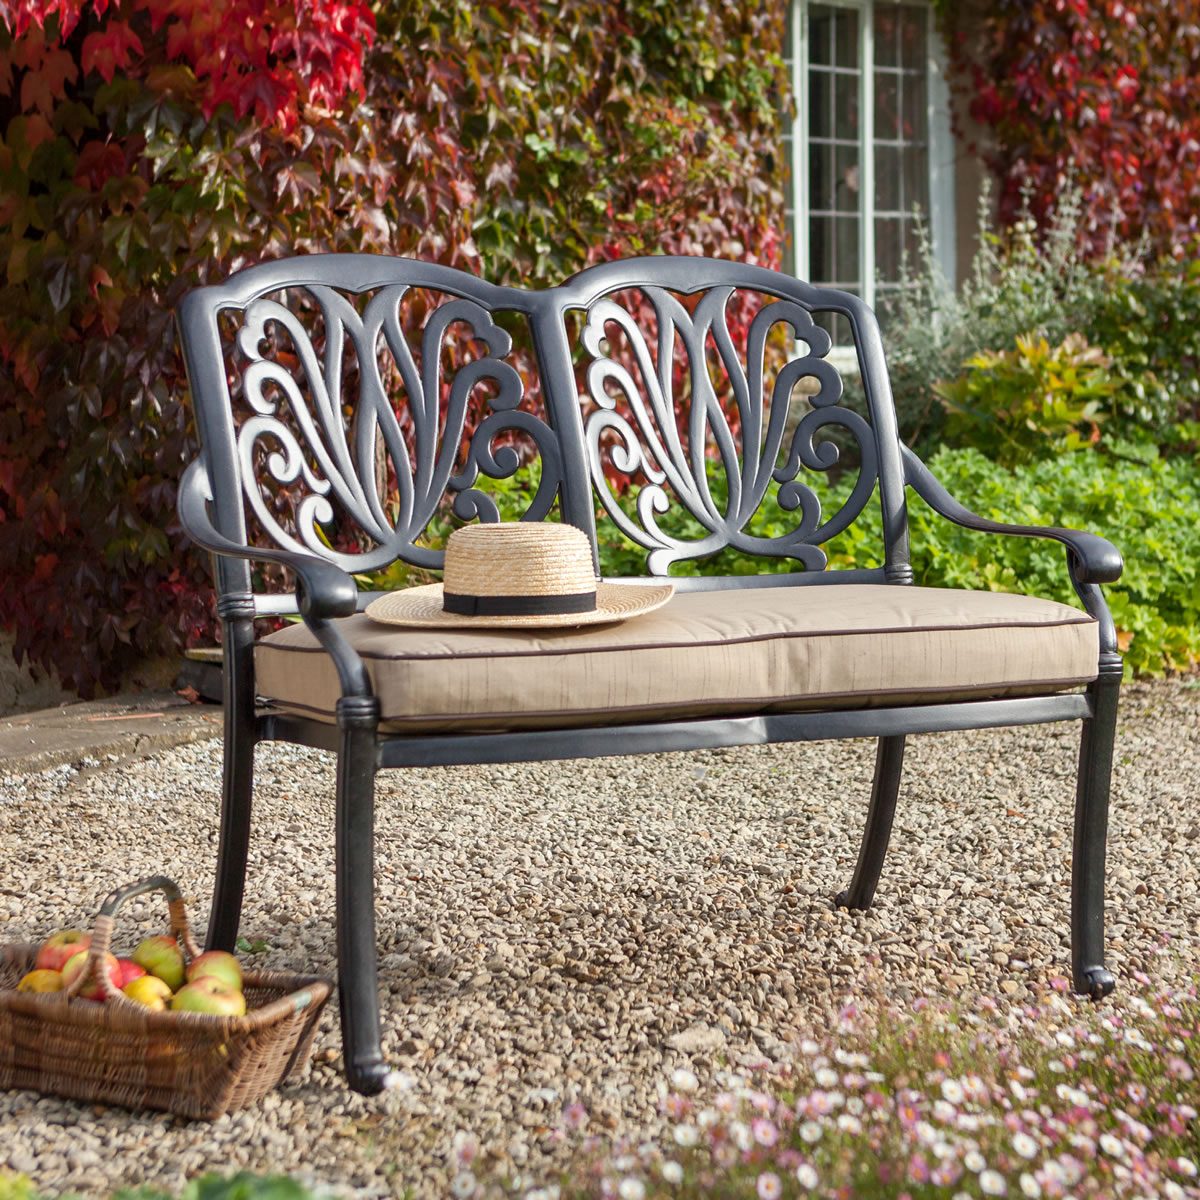 ideas sale bench cushions image outdoor best garden seat wonderful design on with and seating small for pinterest back